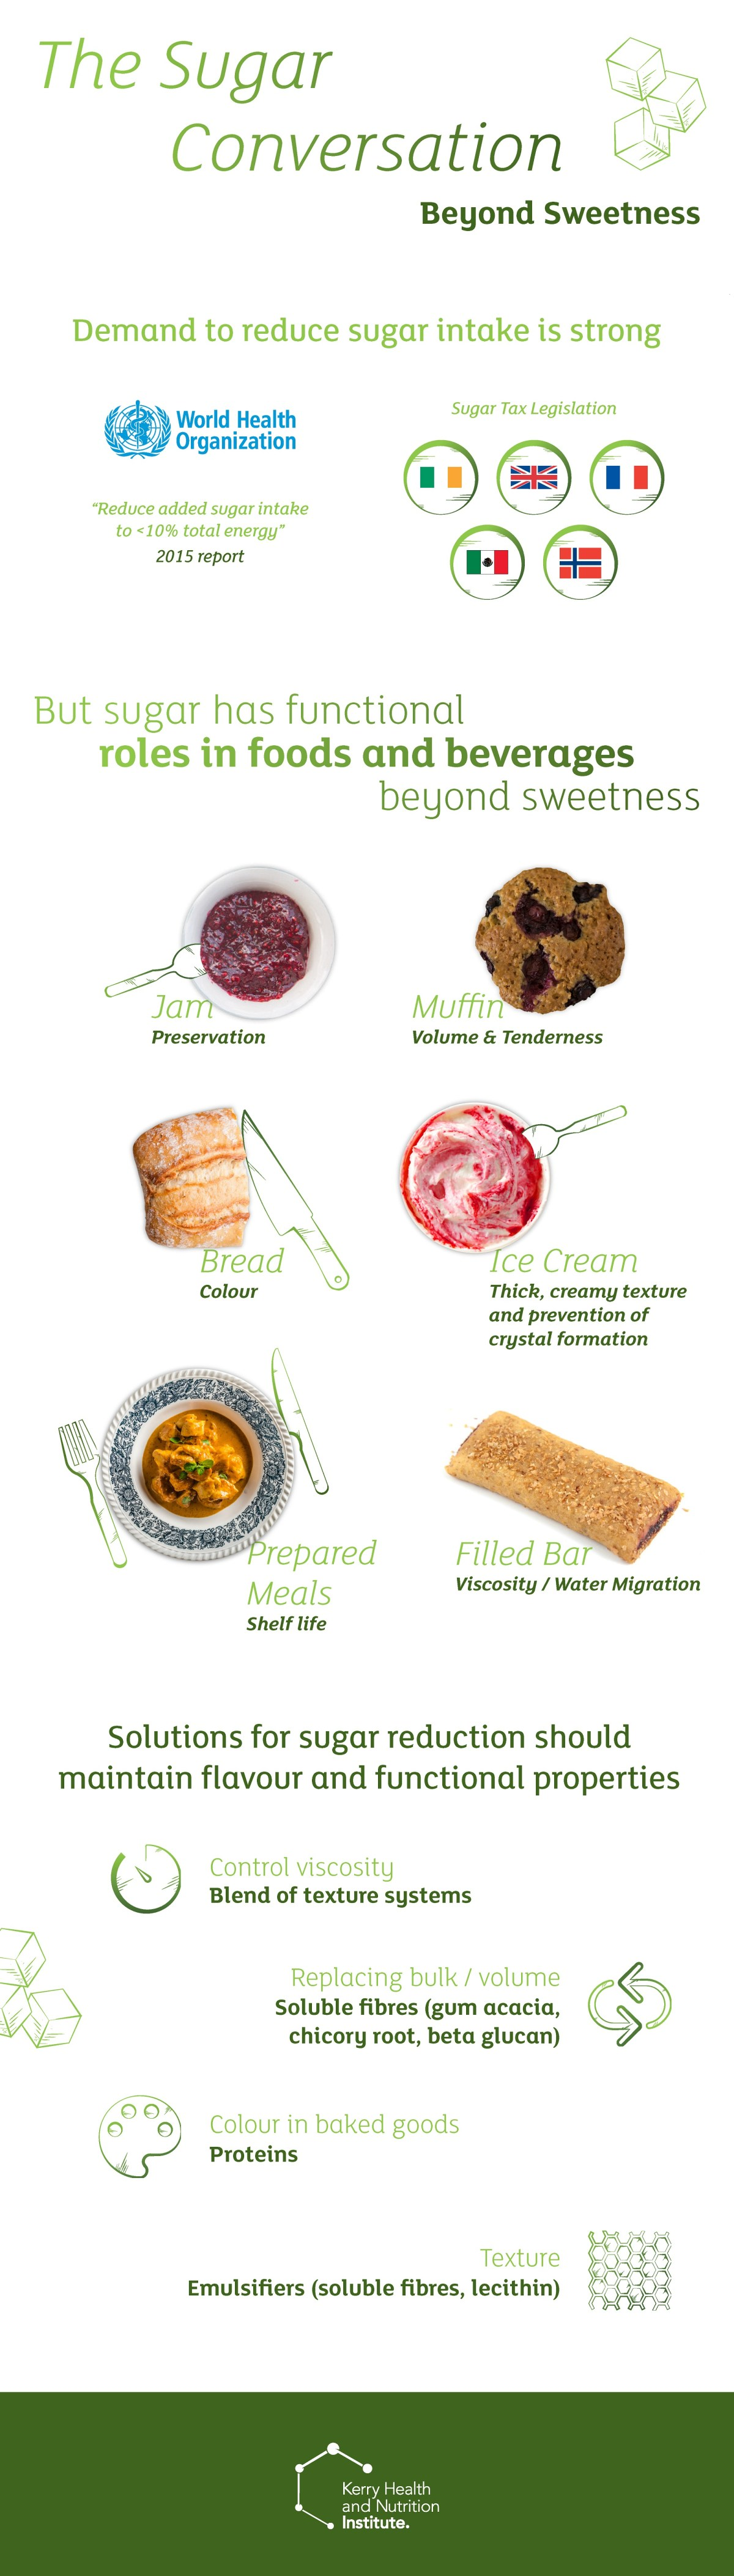 Challenges and Opportunities for Sugar Reduction Infographic